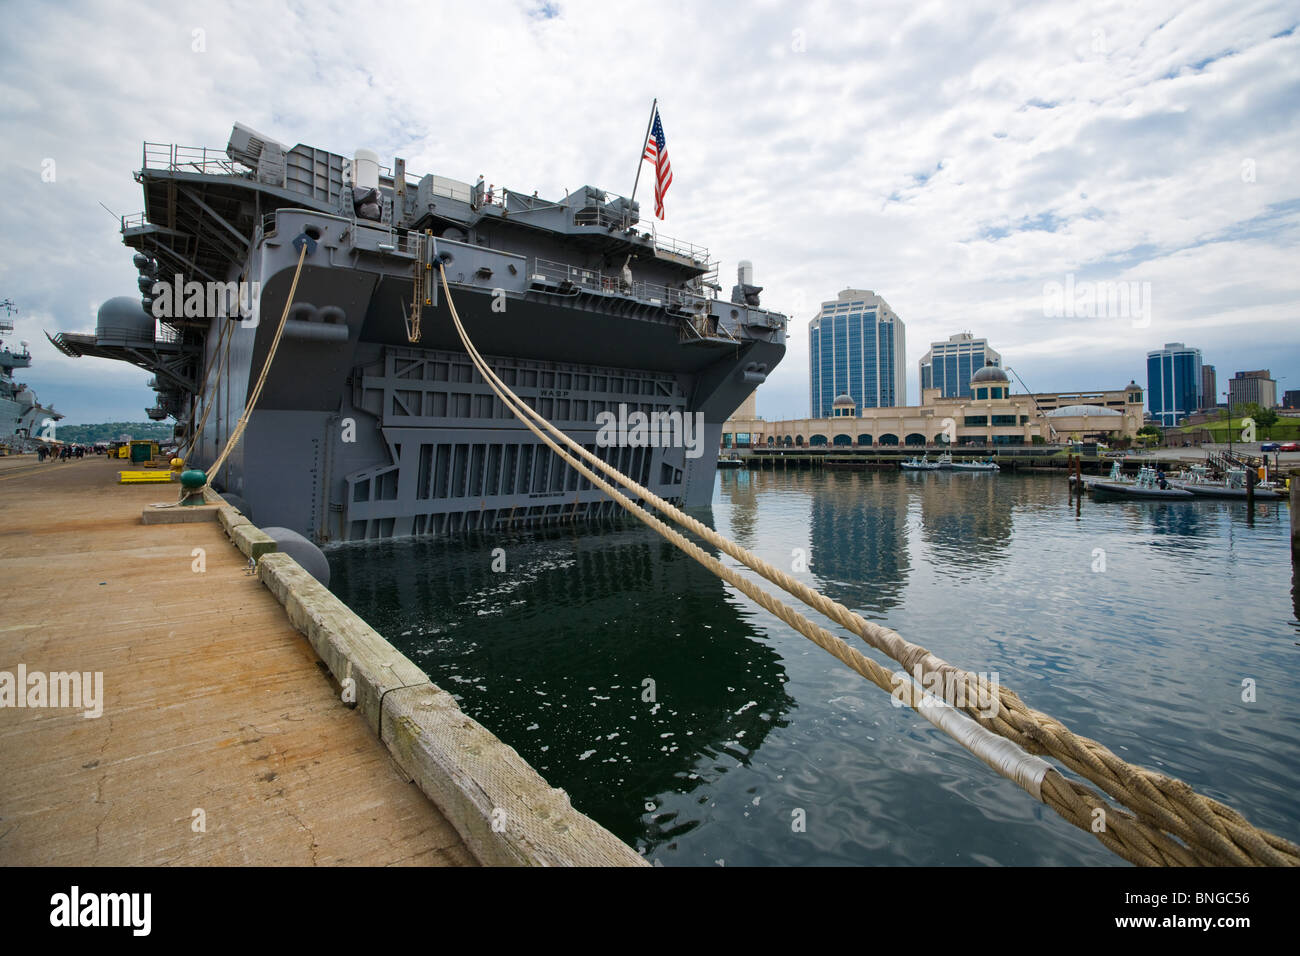 Stern of US Navy amphibious assault ship USS WASP showing the door of the floodable dock for launching landing craft. Stock Photo